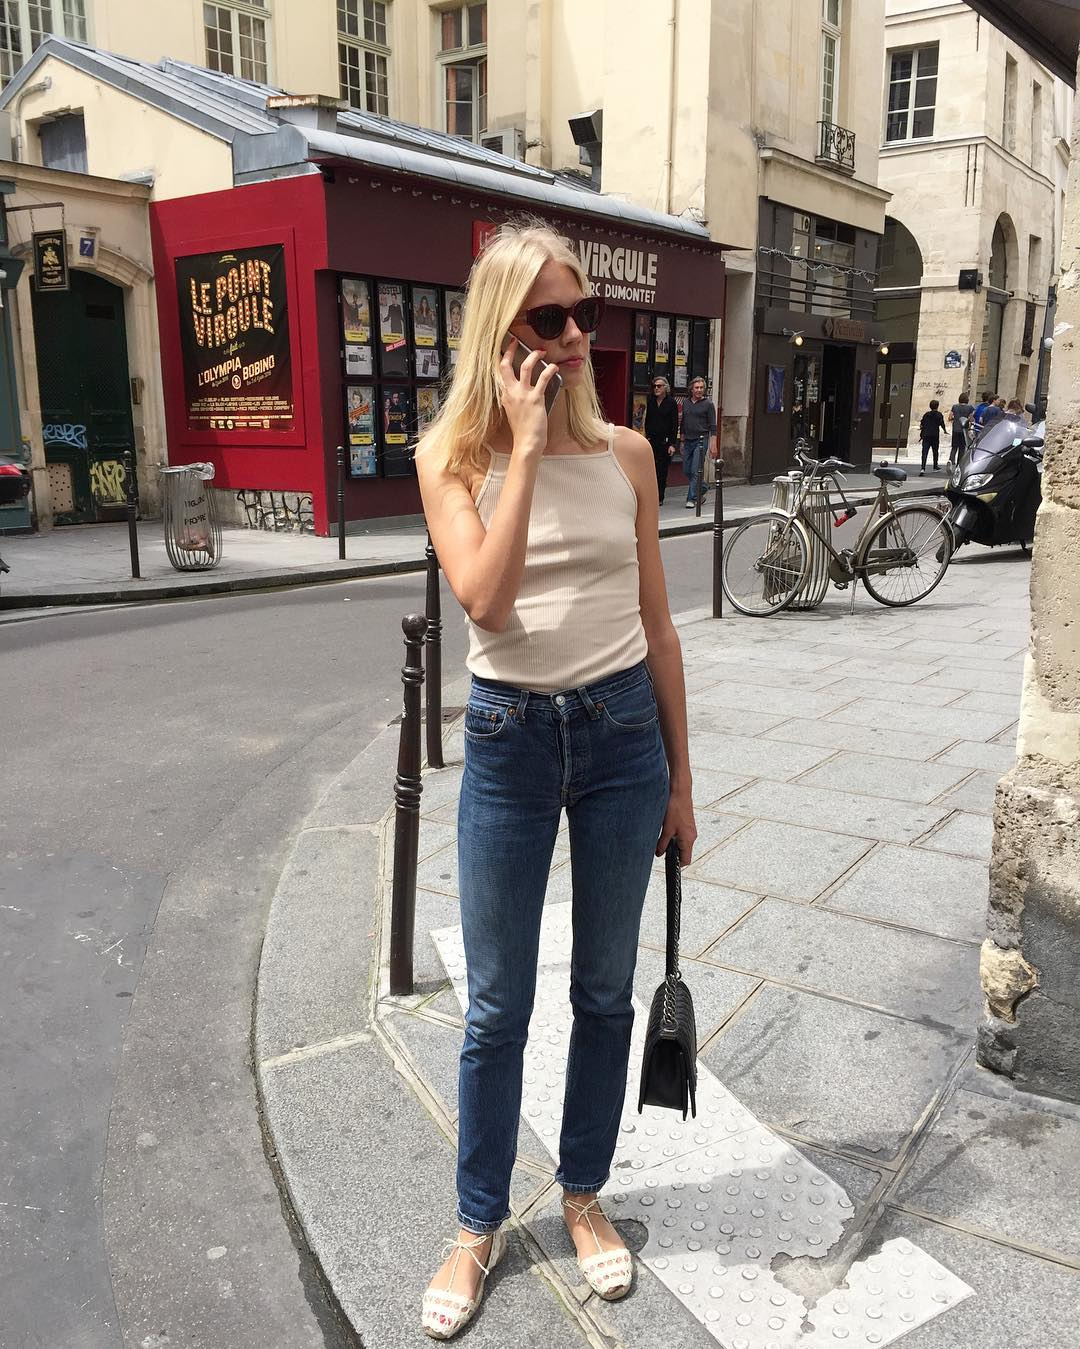 French-Girl Summer Outfit Idea — Emelie Thomsen in a tank top, jeans, and espadrilles